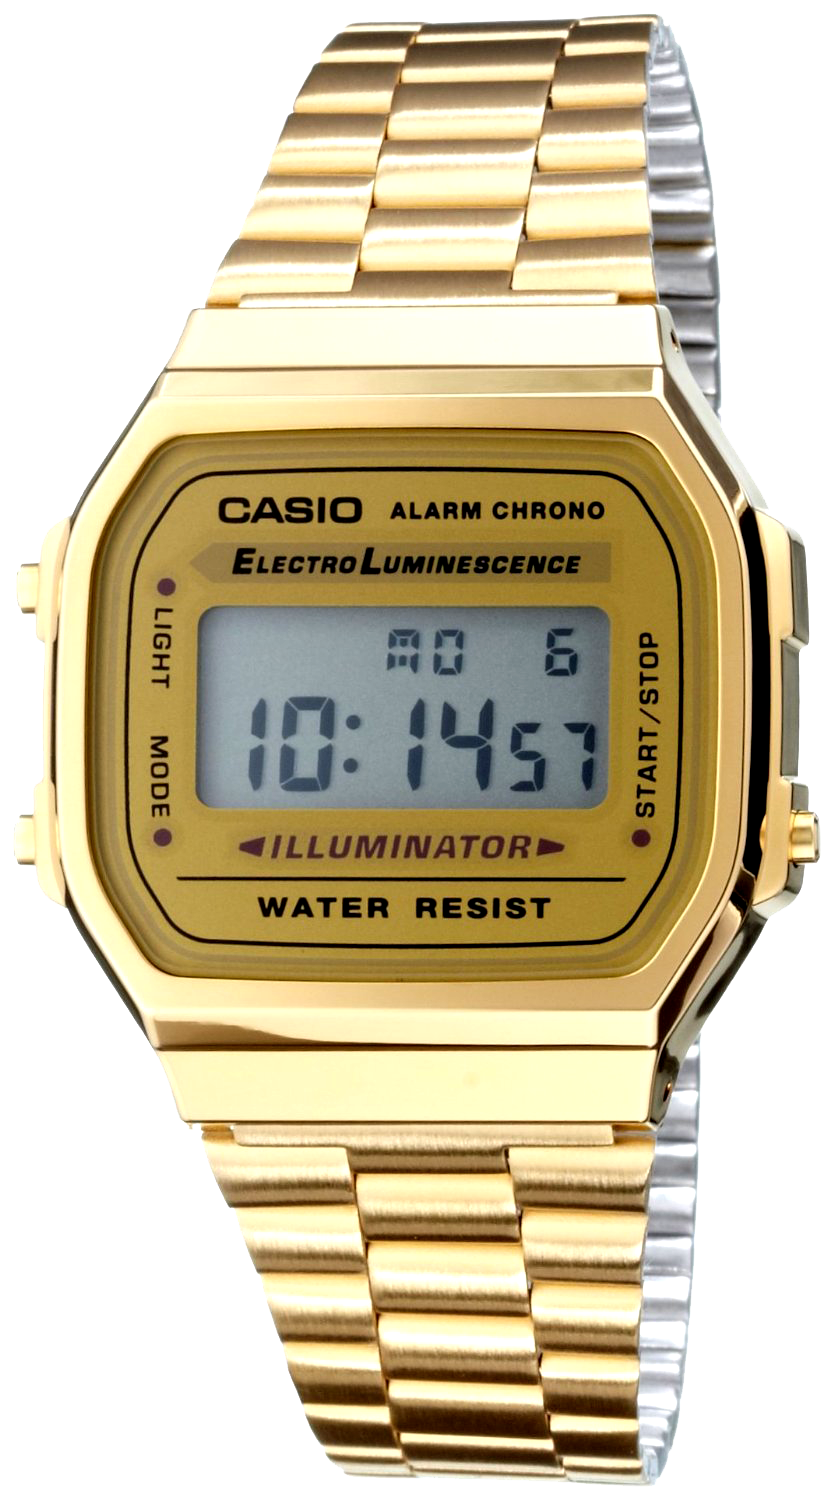 Watch Vintage Pin It's Joe Valachi Von Man's WorldCasio A Auf sdCrxthQB